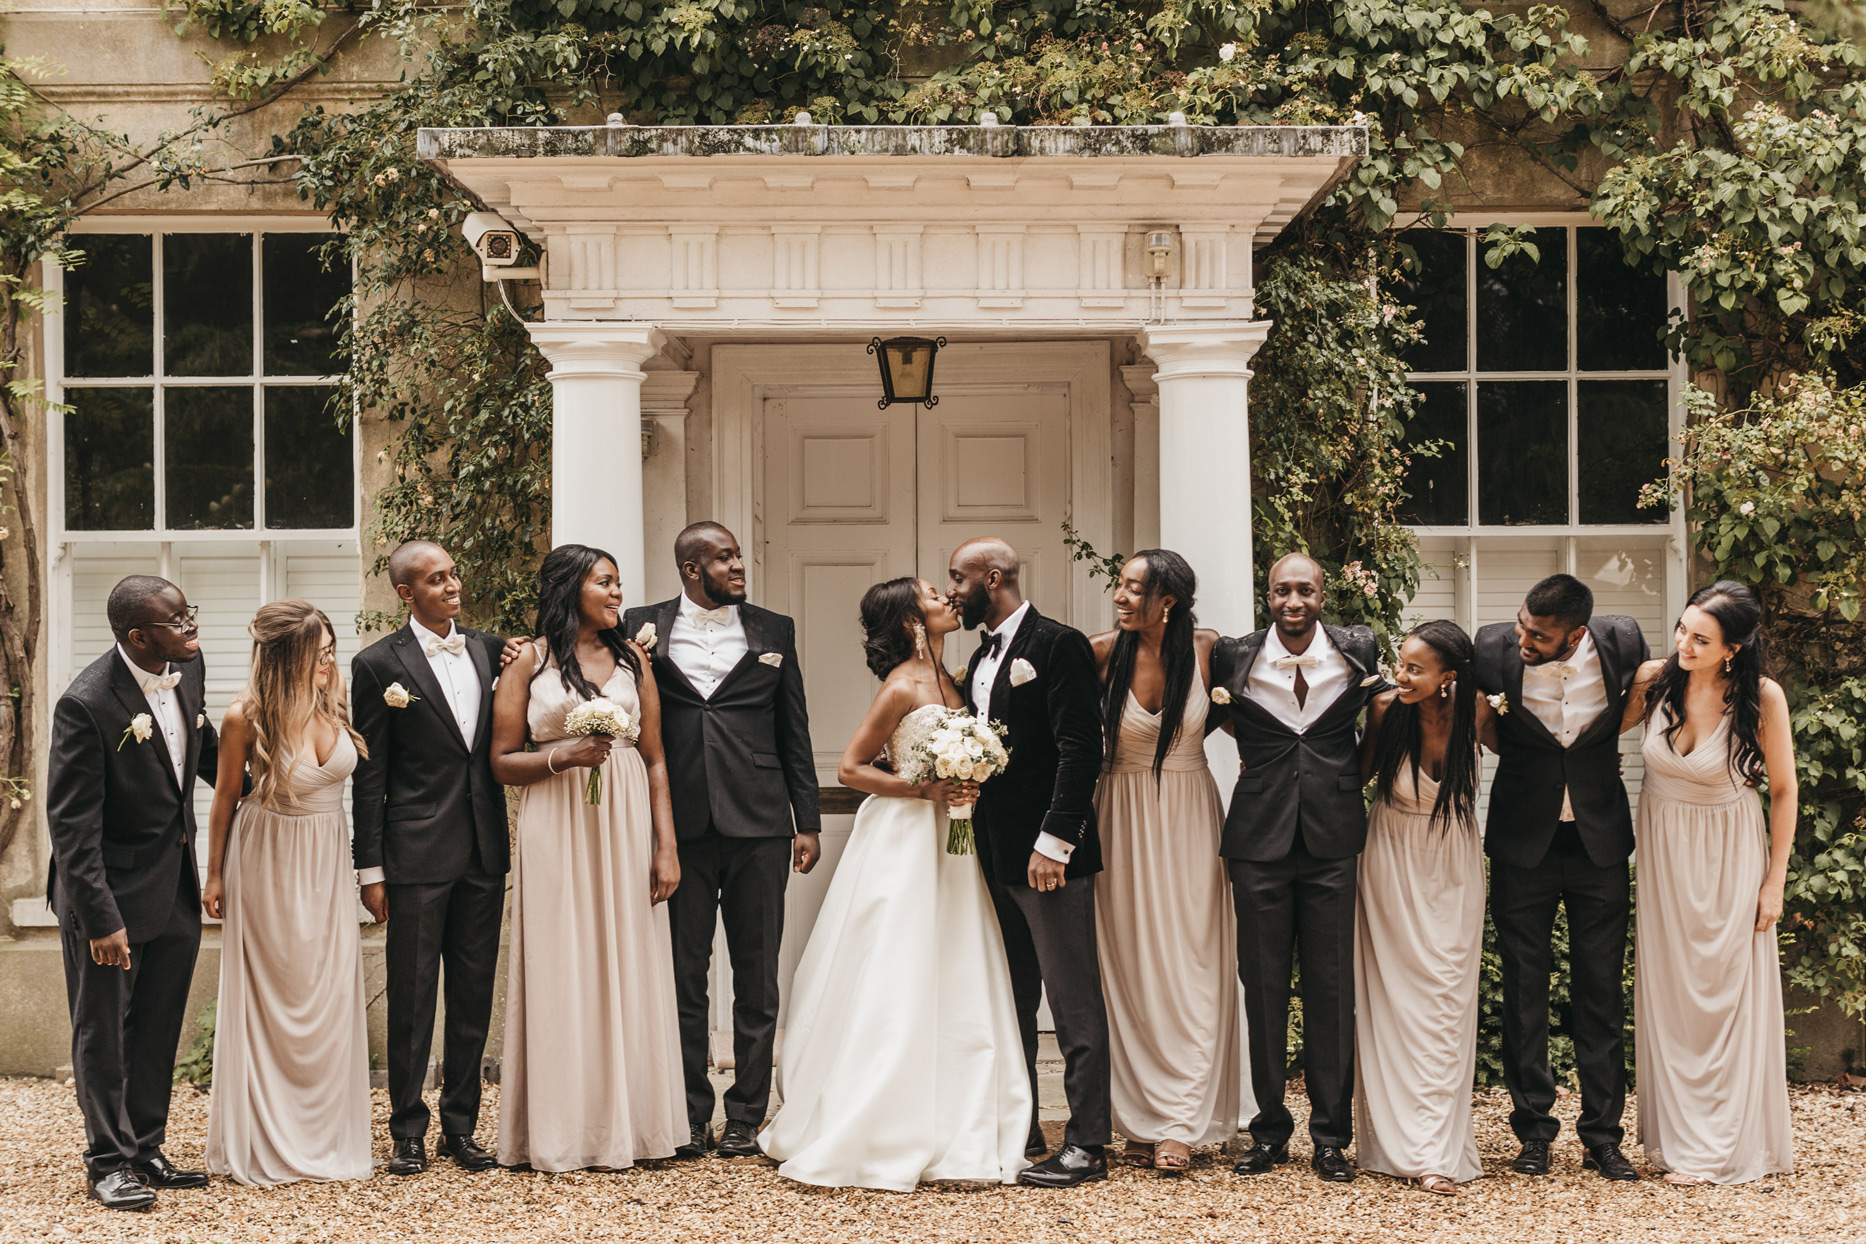 wedding party tuxedos cream colored gowns